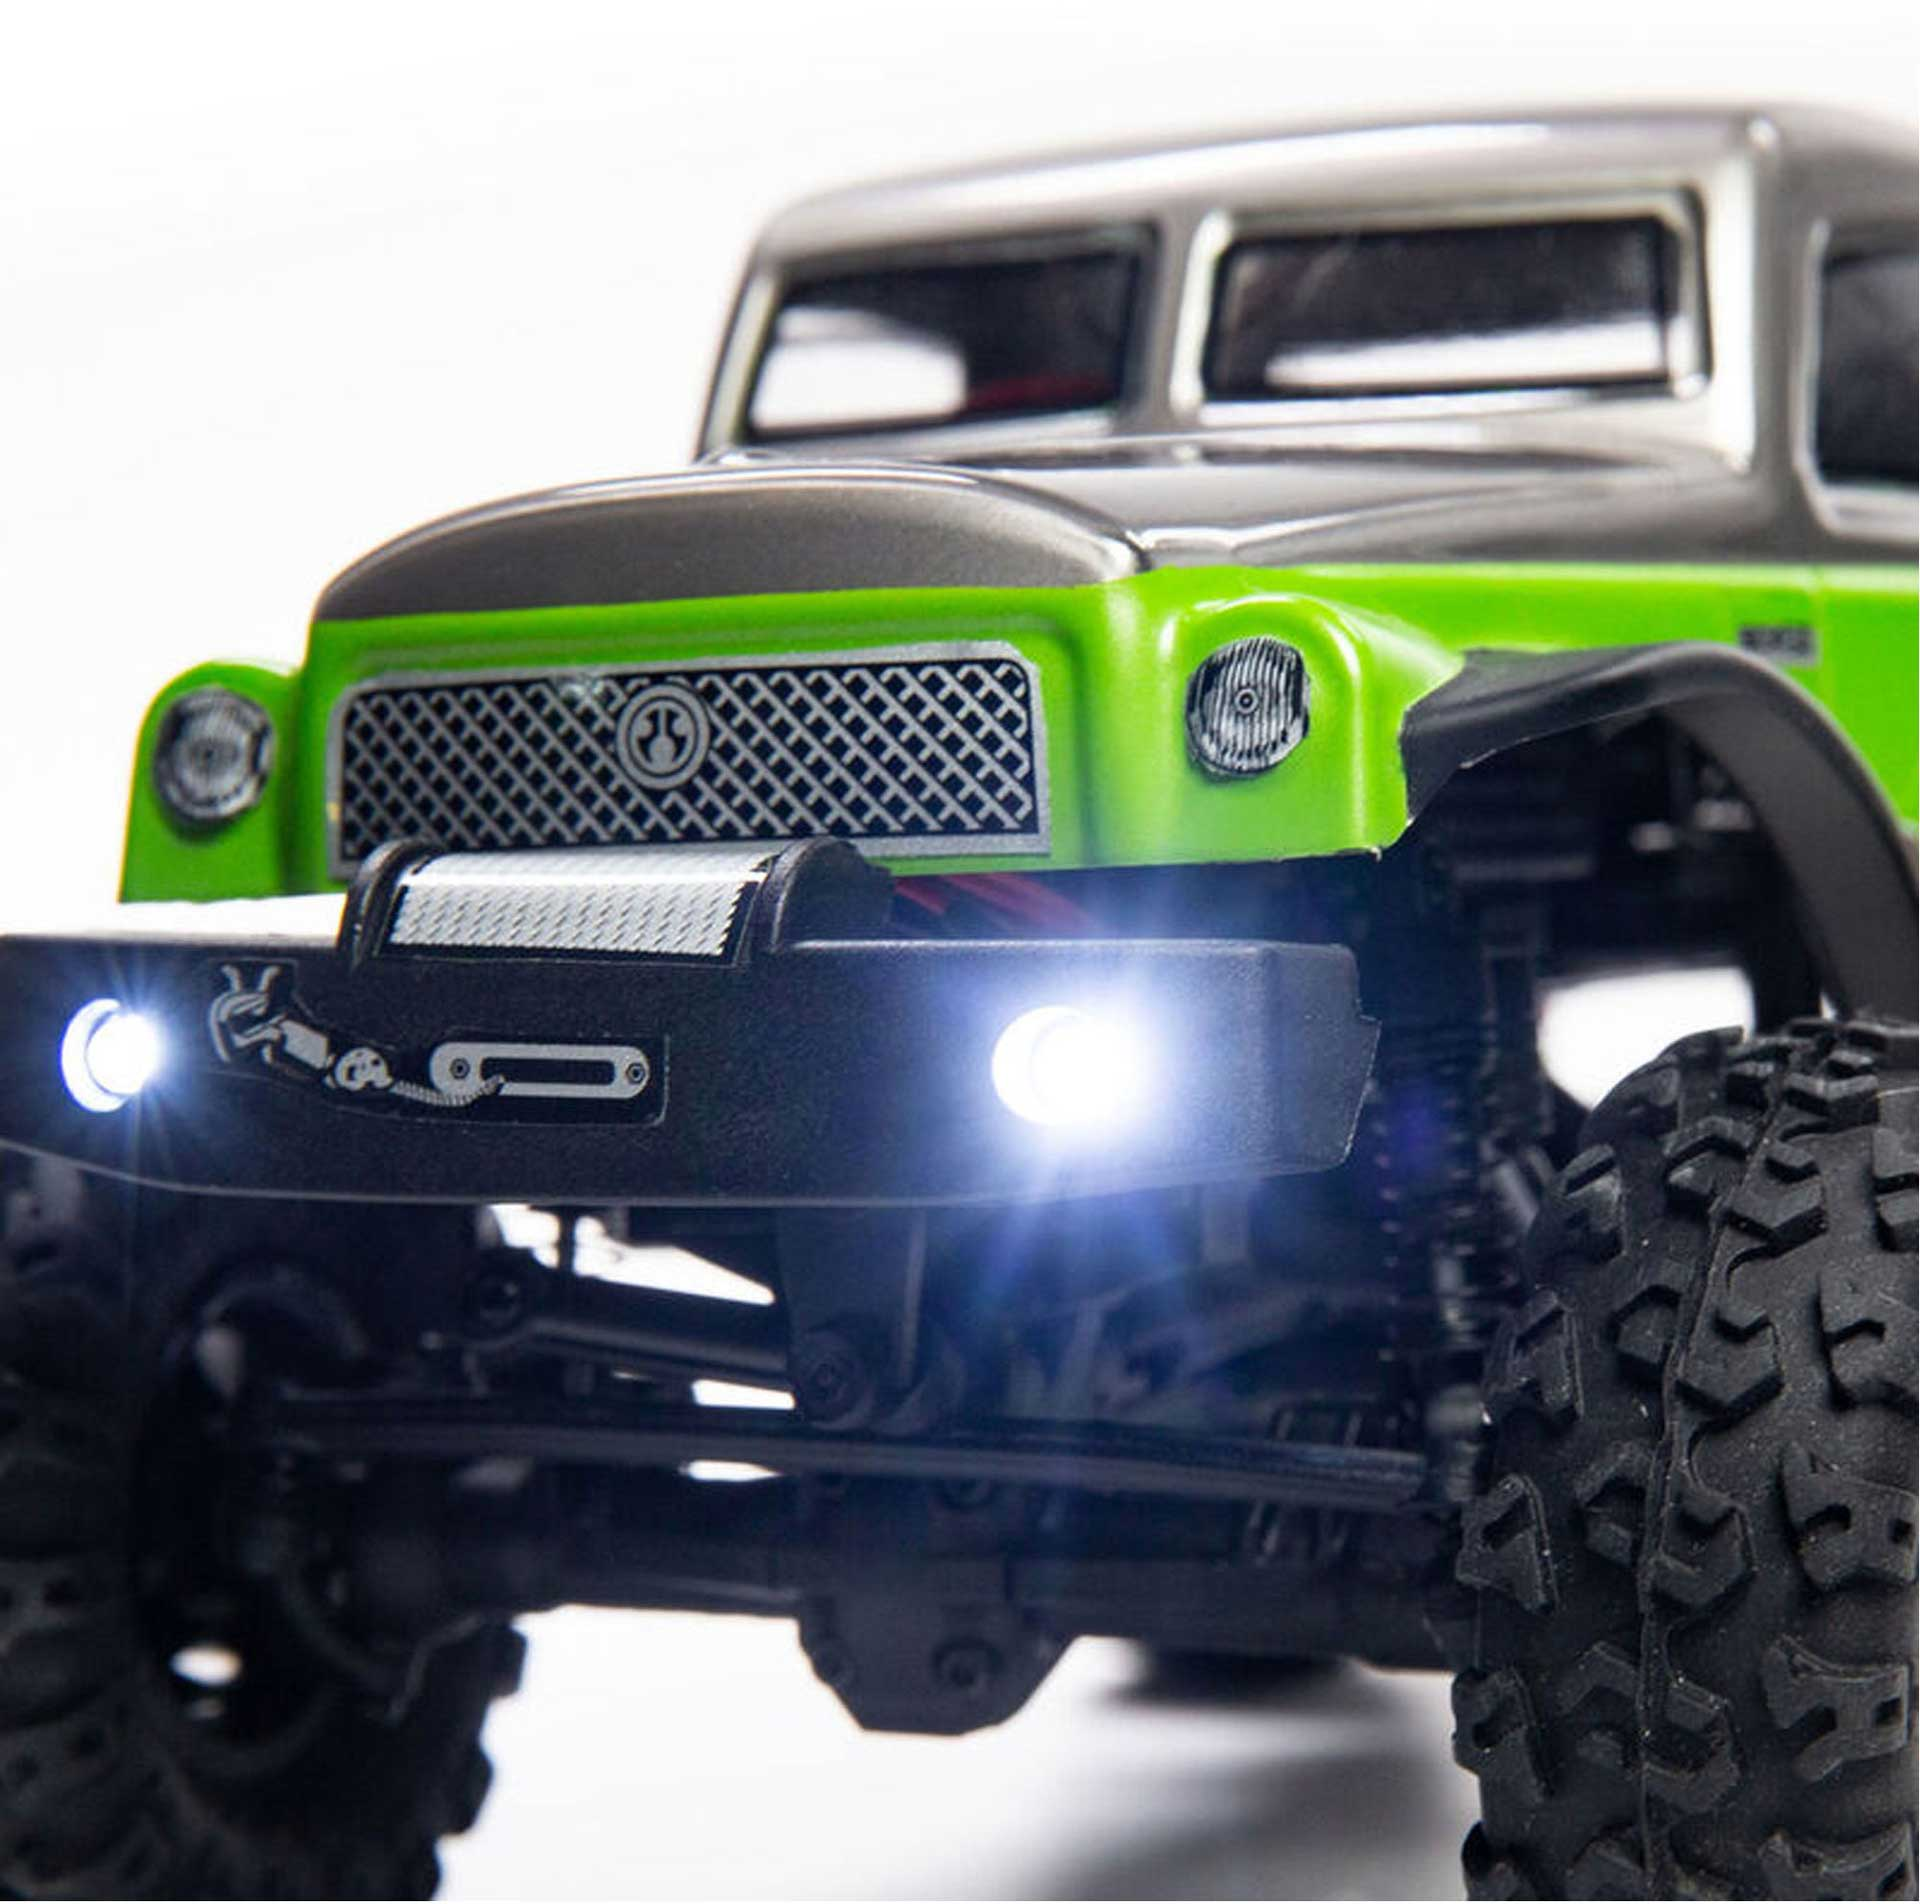 AXIAL SCX24 B-17 Betty Limited 1/24 4WD Grün RTR